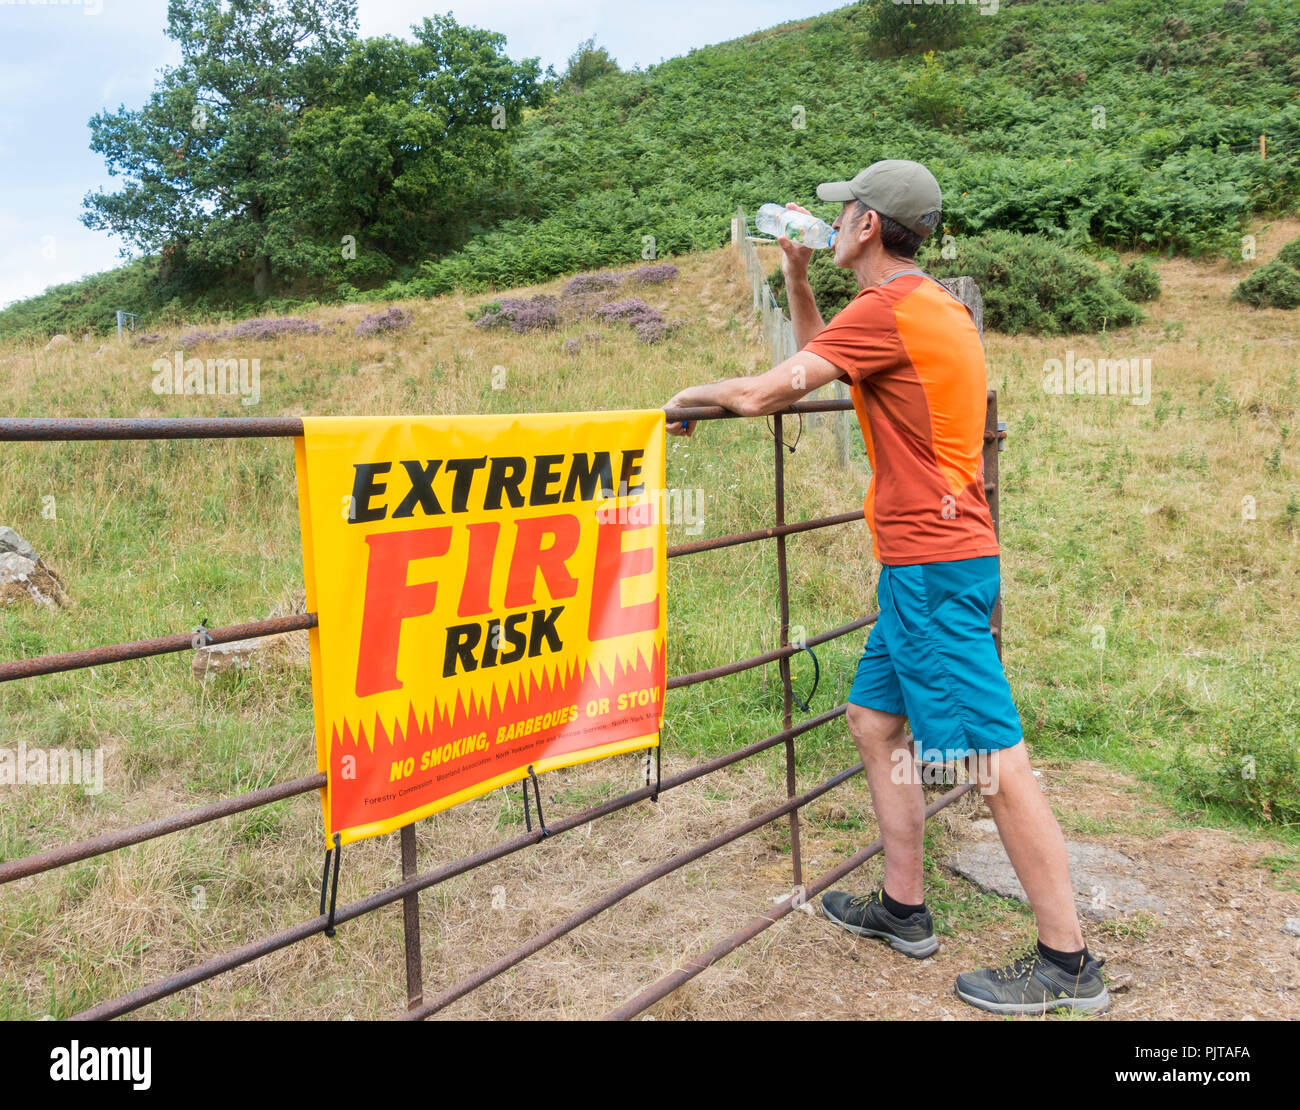 Heatwave UK: Trail runner next to Extreme fire risk sign in The North York Moors National Park. Summer 2018 - Stock Image